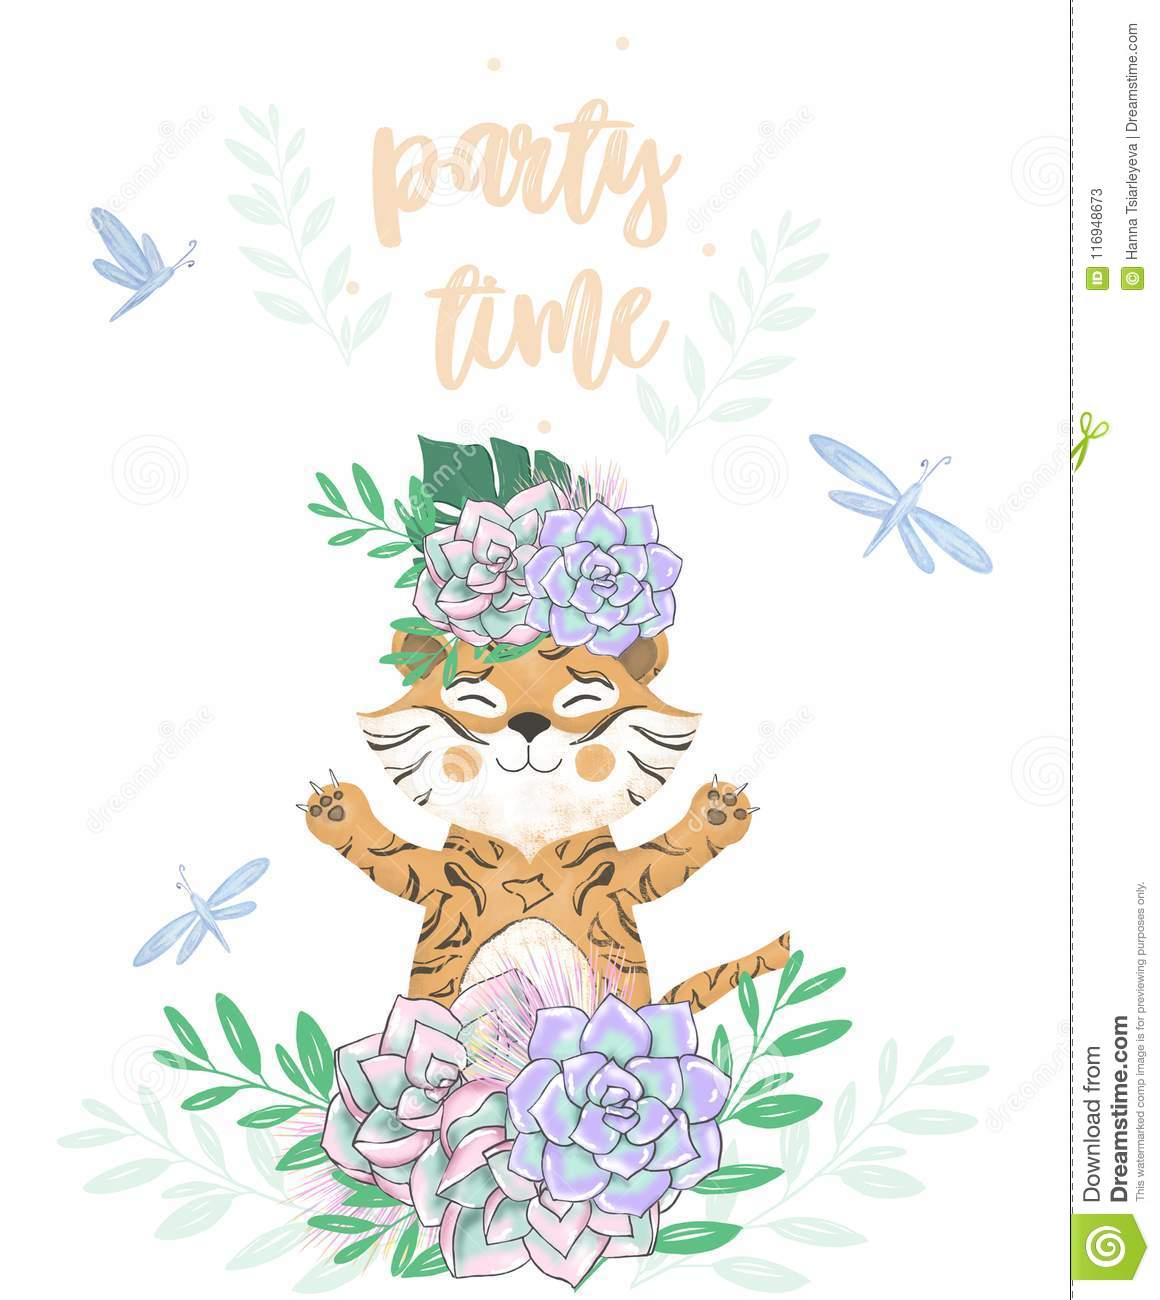 Tiger Digital Clip Art Cute Animal And Flowers Party Time Text Greeting Celebration